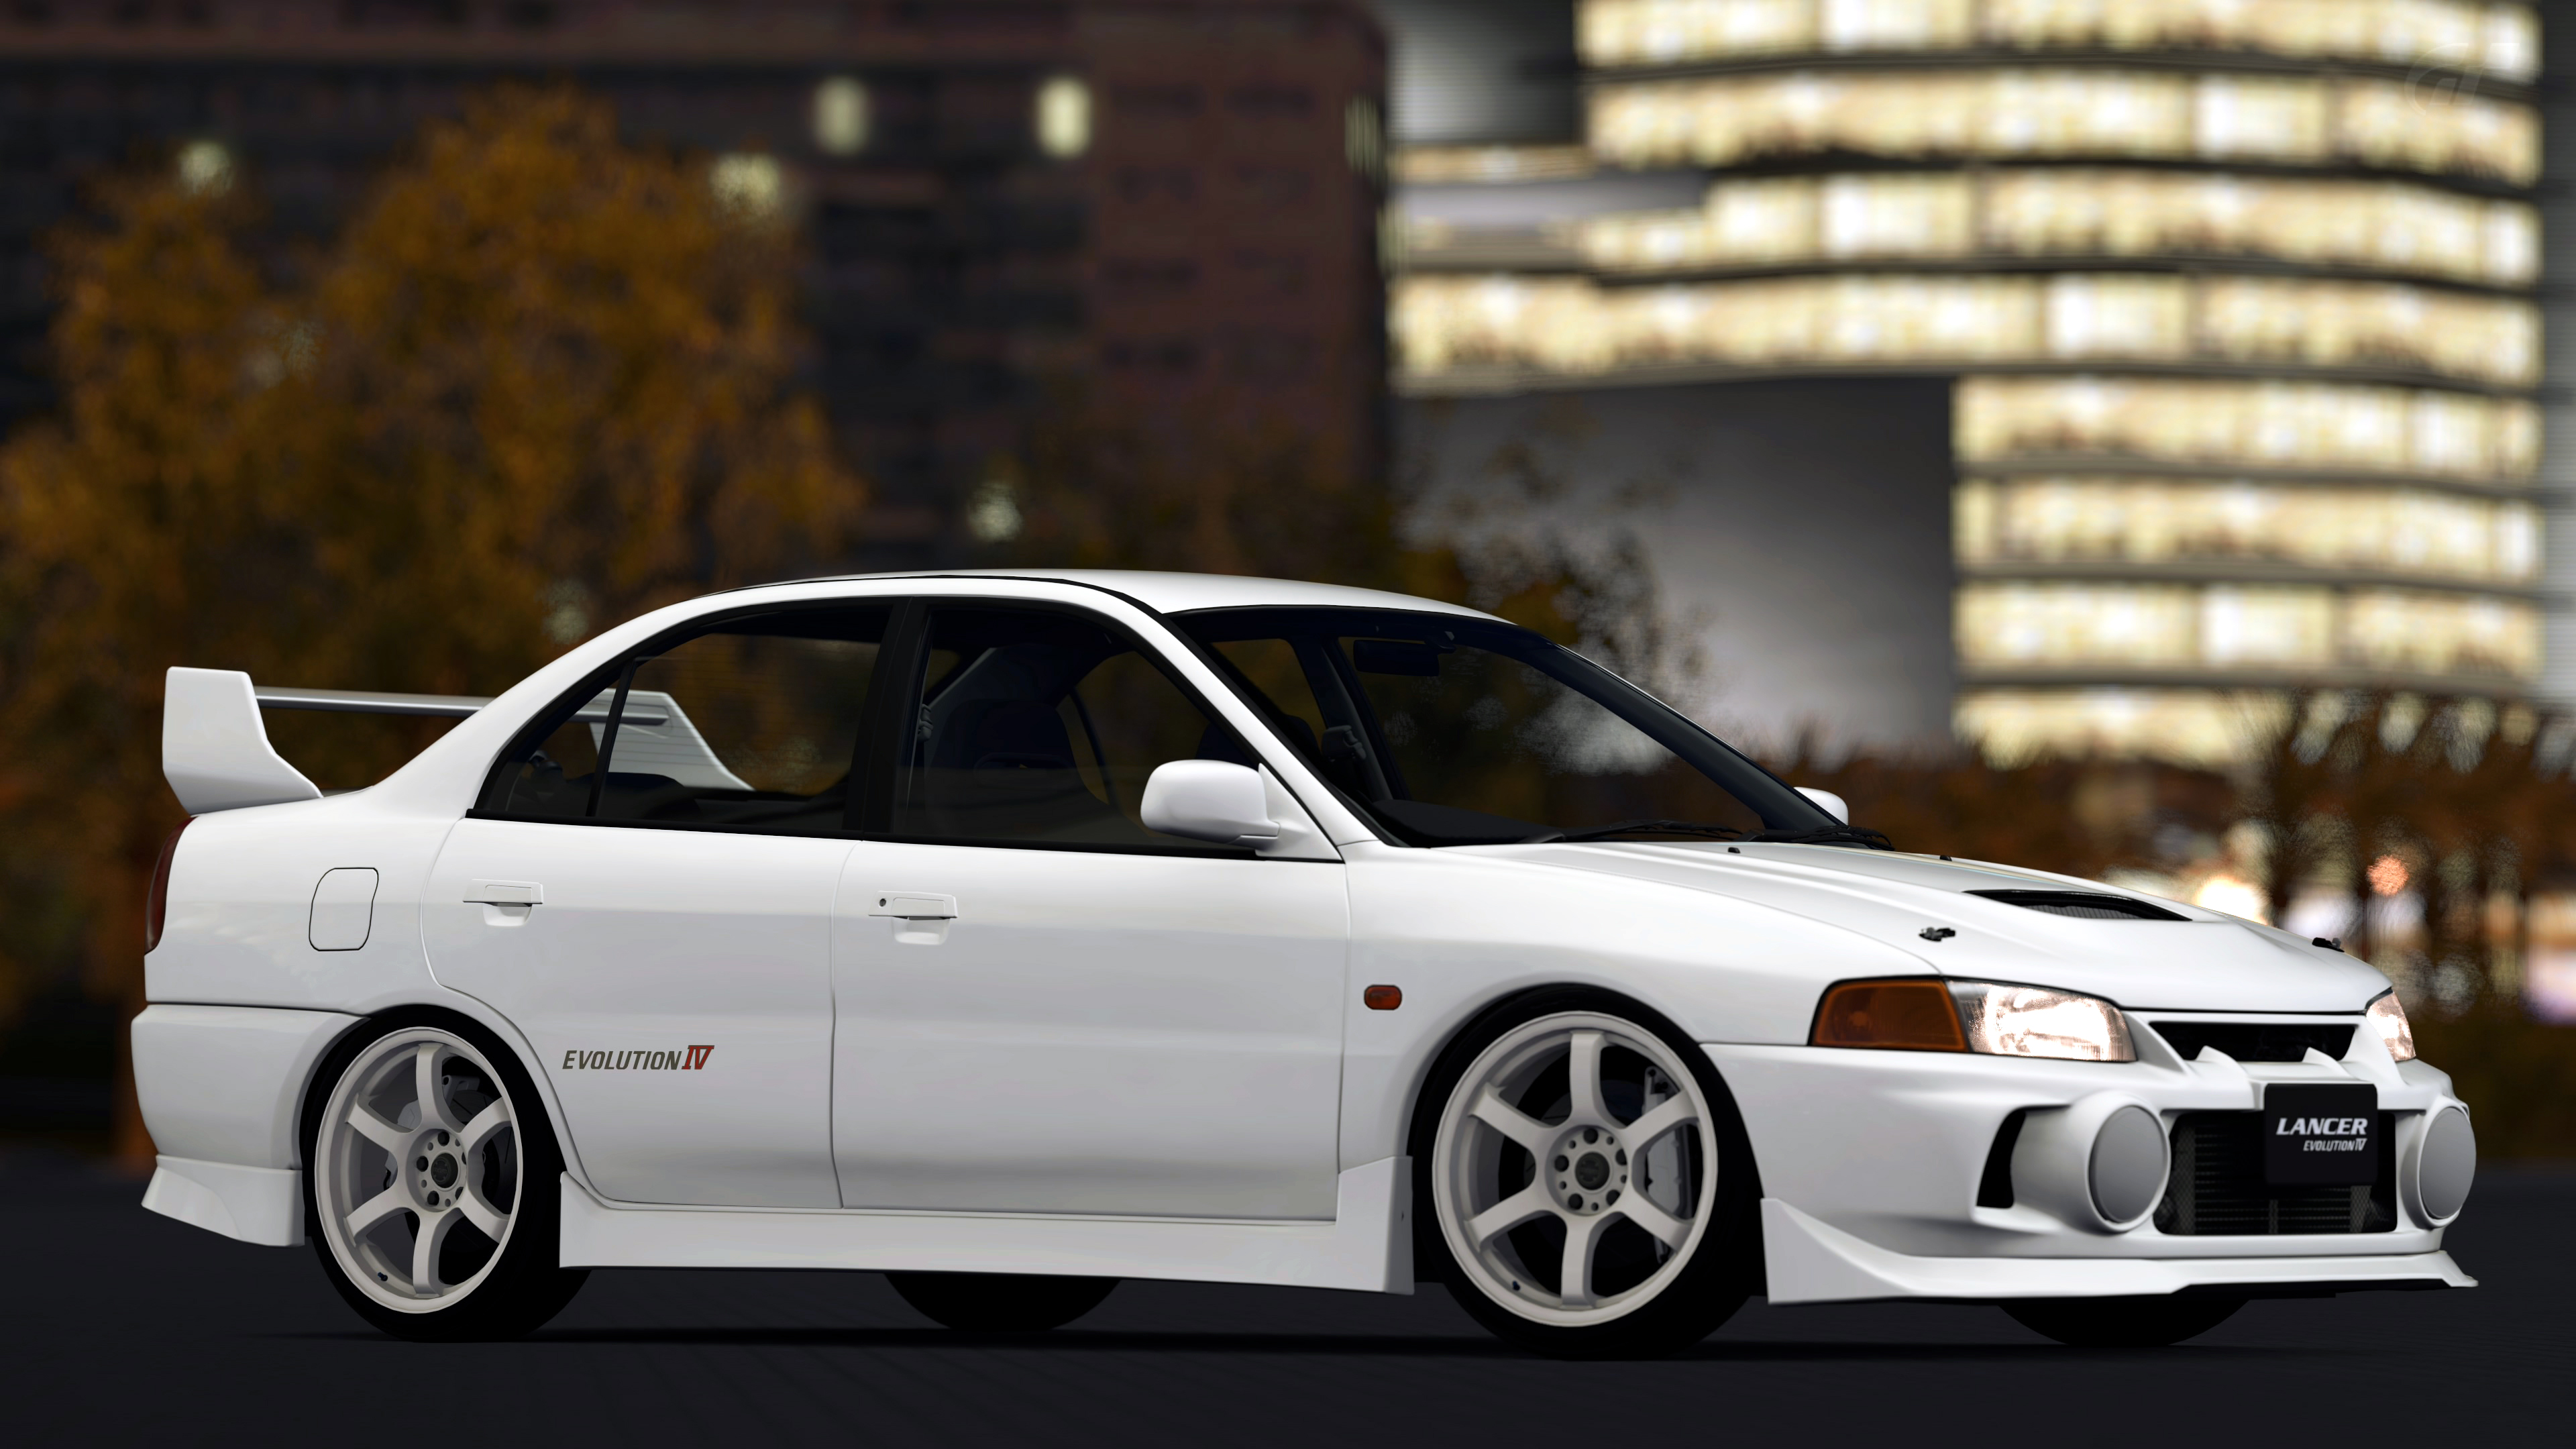 And To Finish Off The Gt Spree An Evo Iv In Gt6